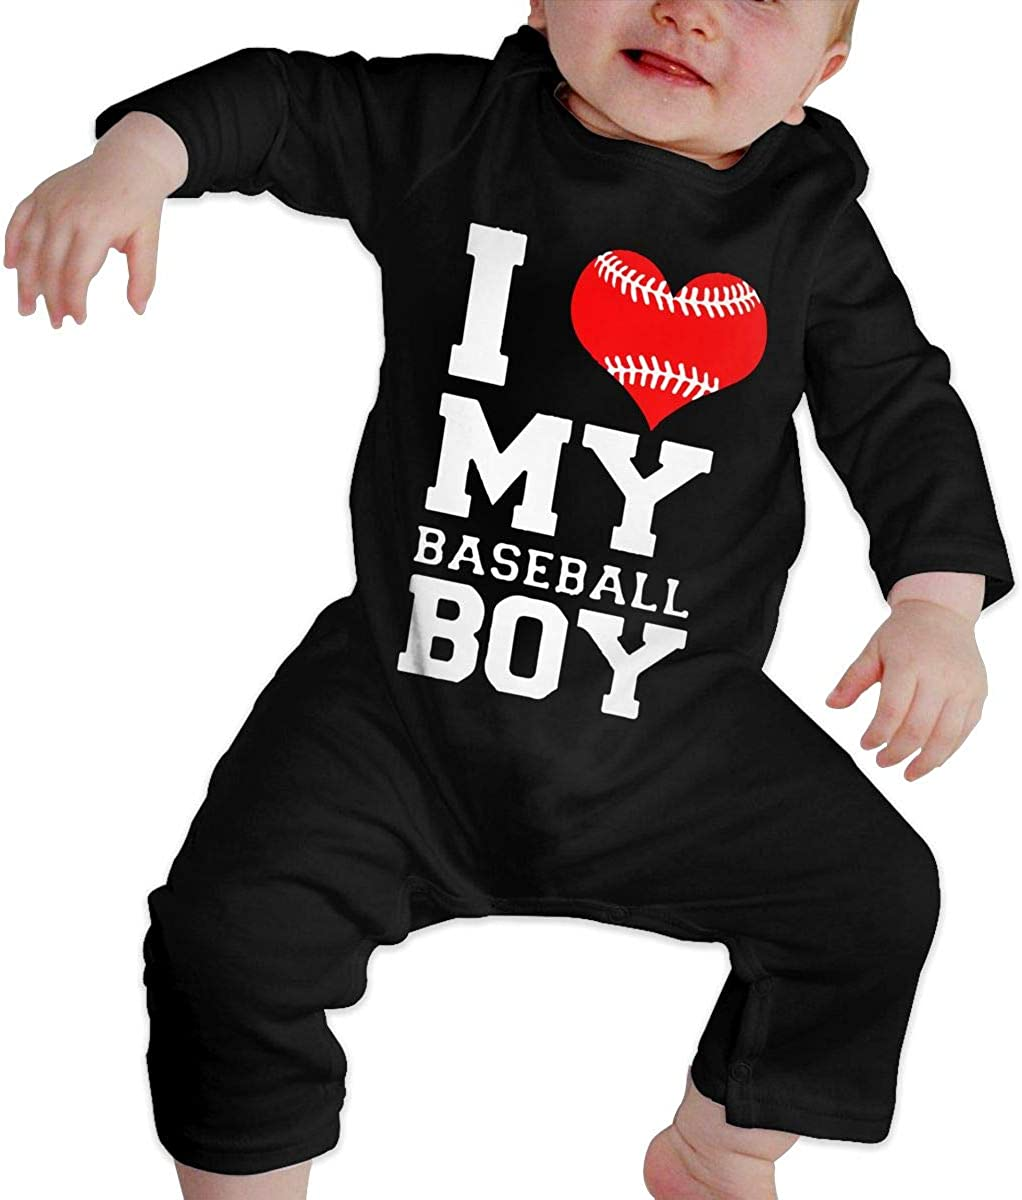 I Love My Baseball Boy Organic One-Piece Bodysuits Coverall Outfits Toddler Baby Boy Romper Jumpsuit